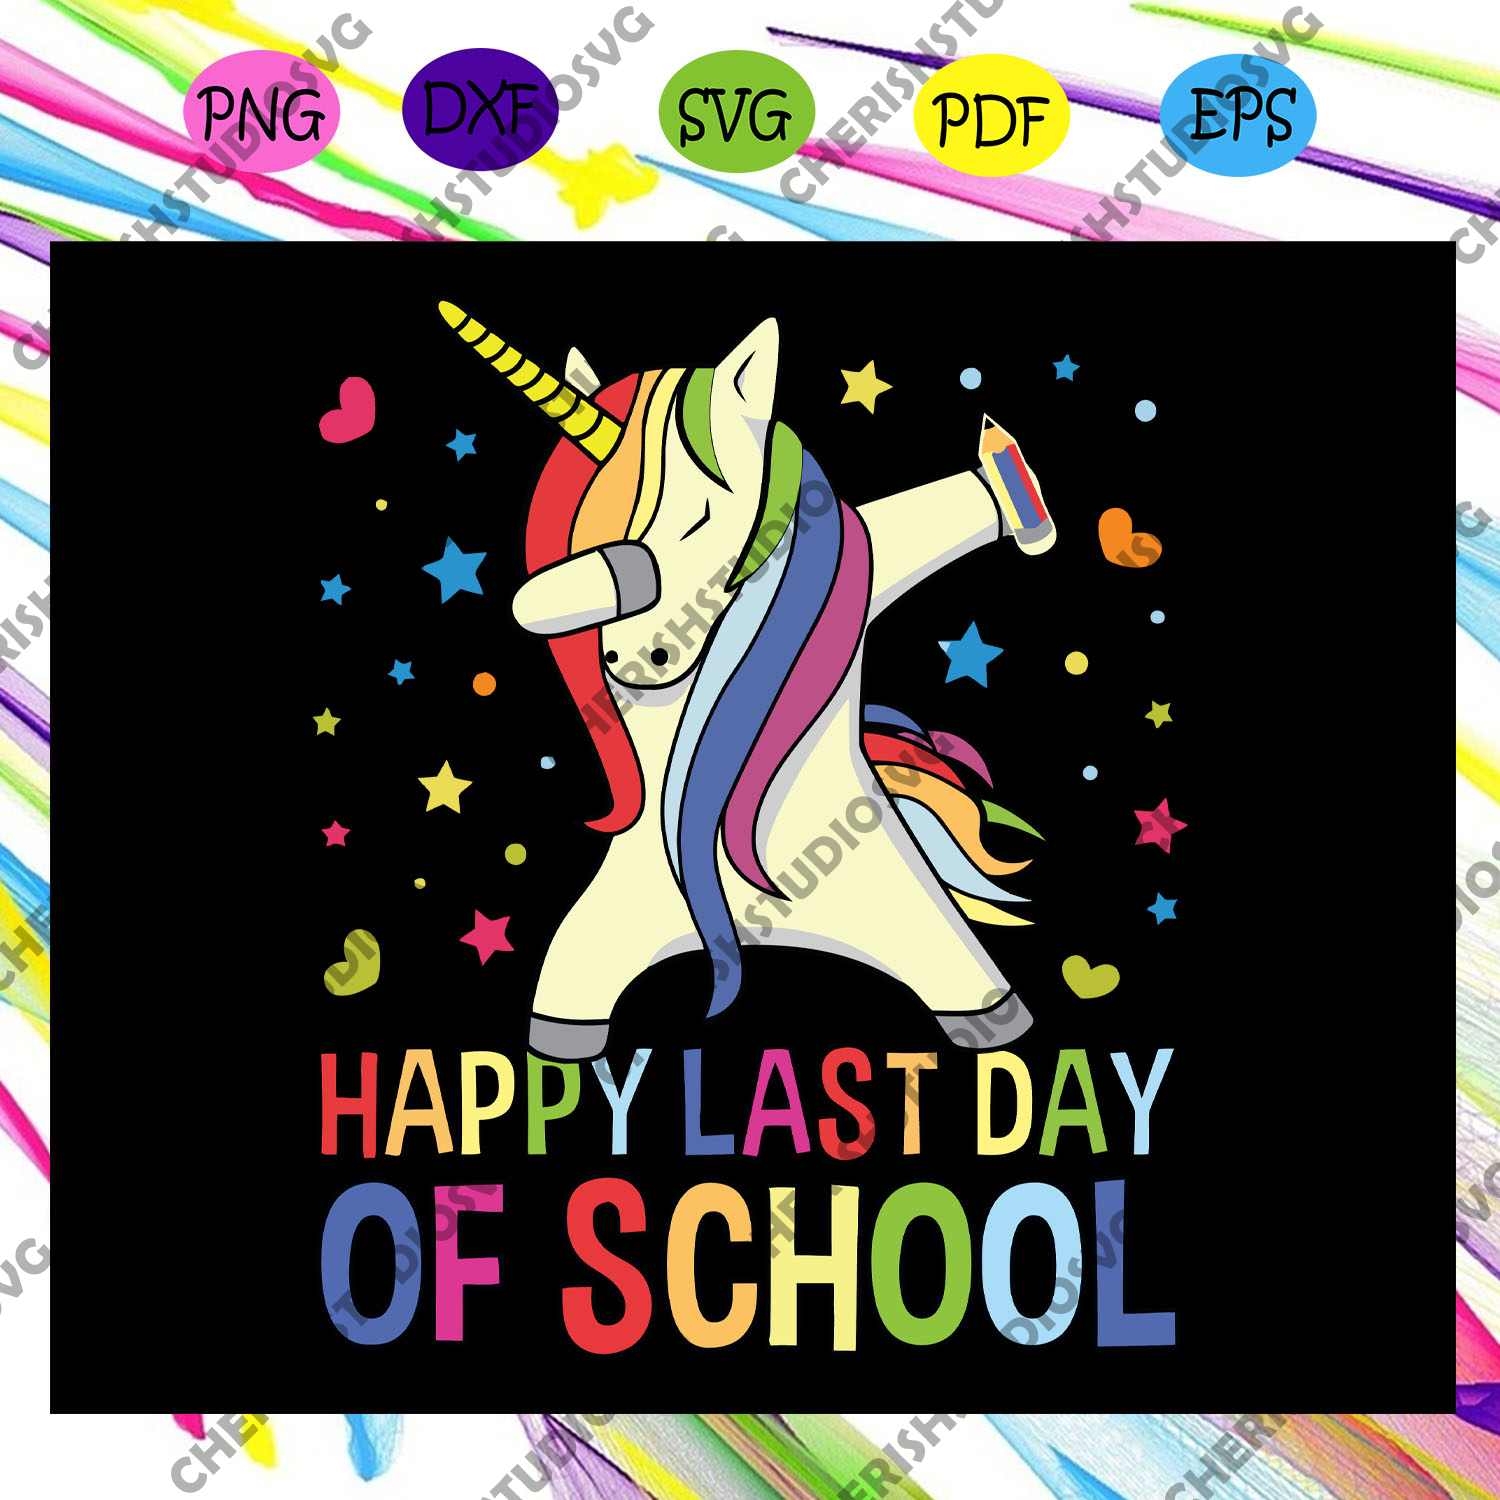 Happy last day of school, graduation svg, graduation gift, graduate svg, unicorn dabbing,school svg, last day of school,end of school,Files For Silhouette, Files For Cricut, SVG, DXF, EPS, PNG, Instant Download